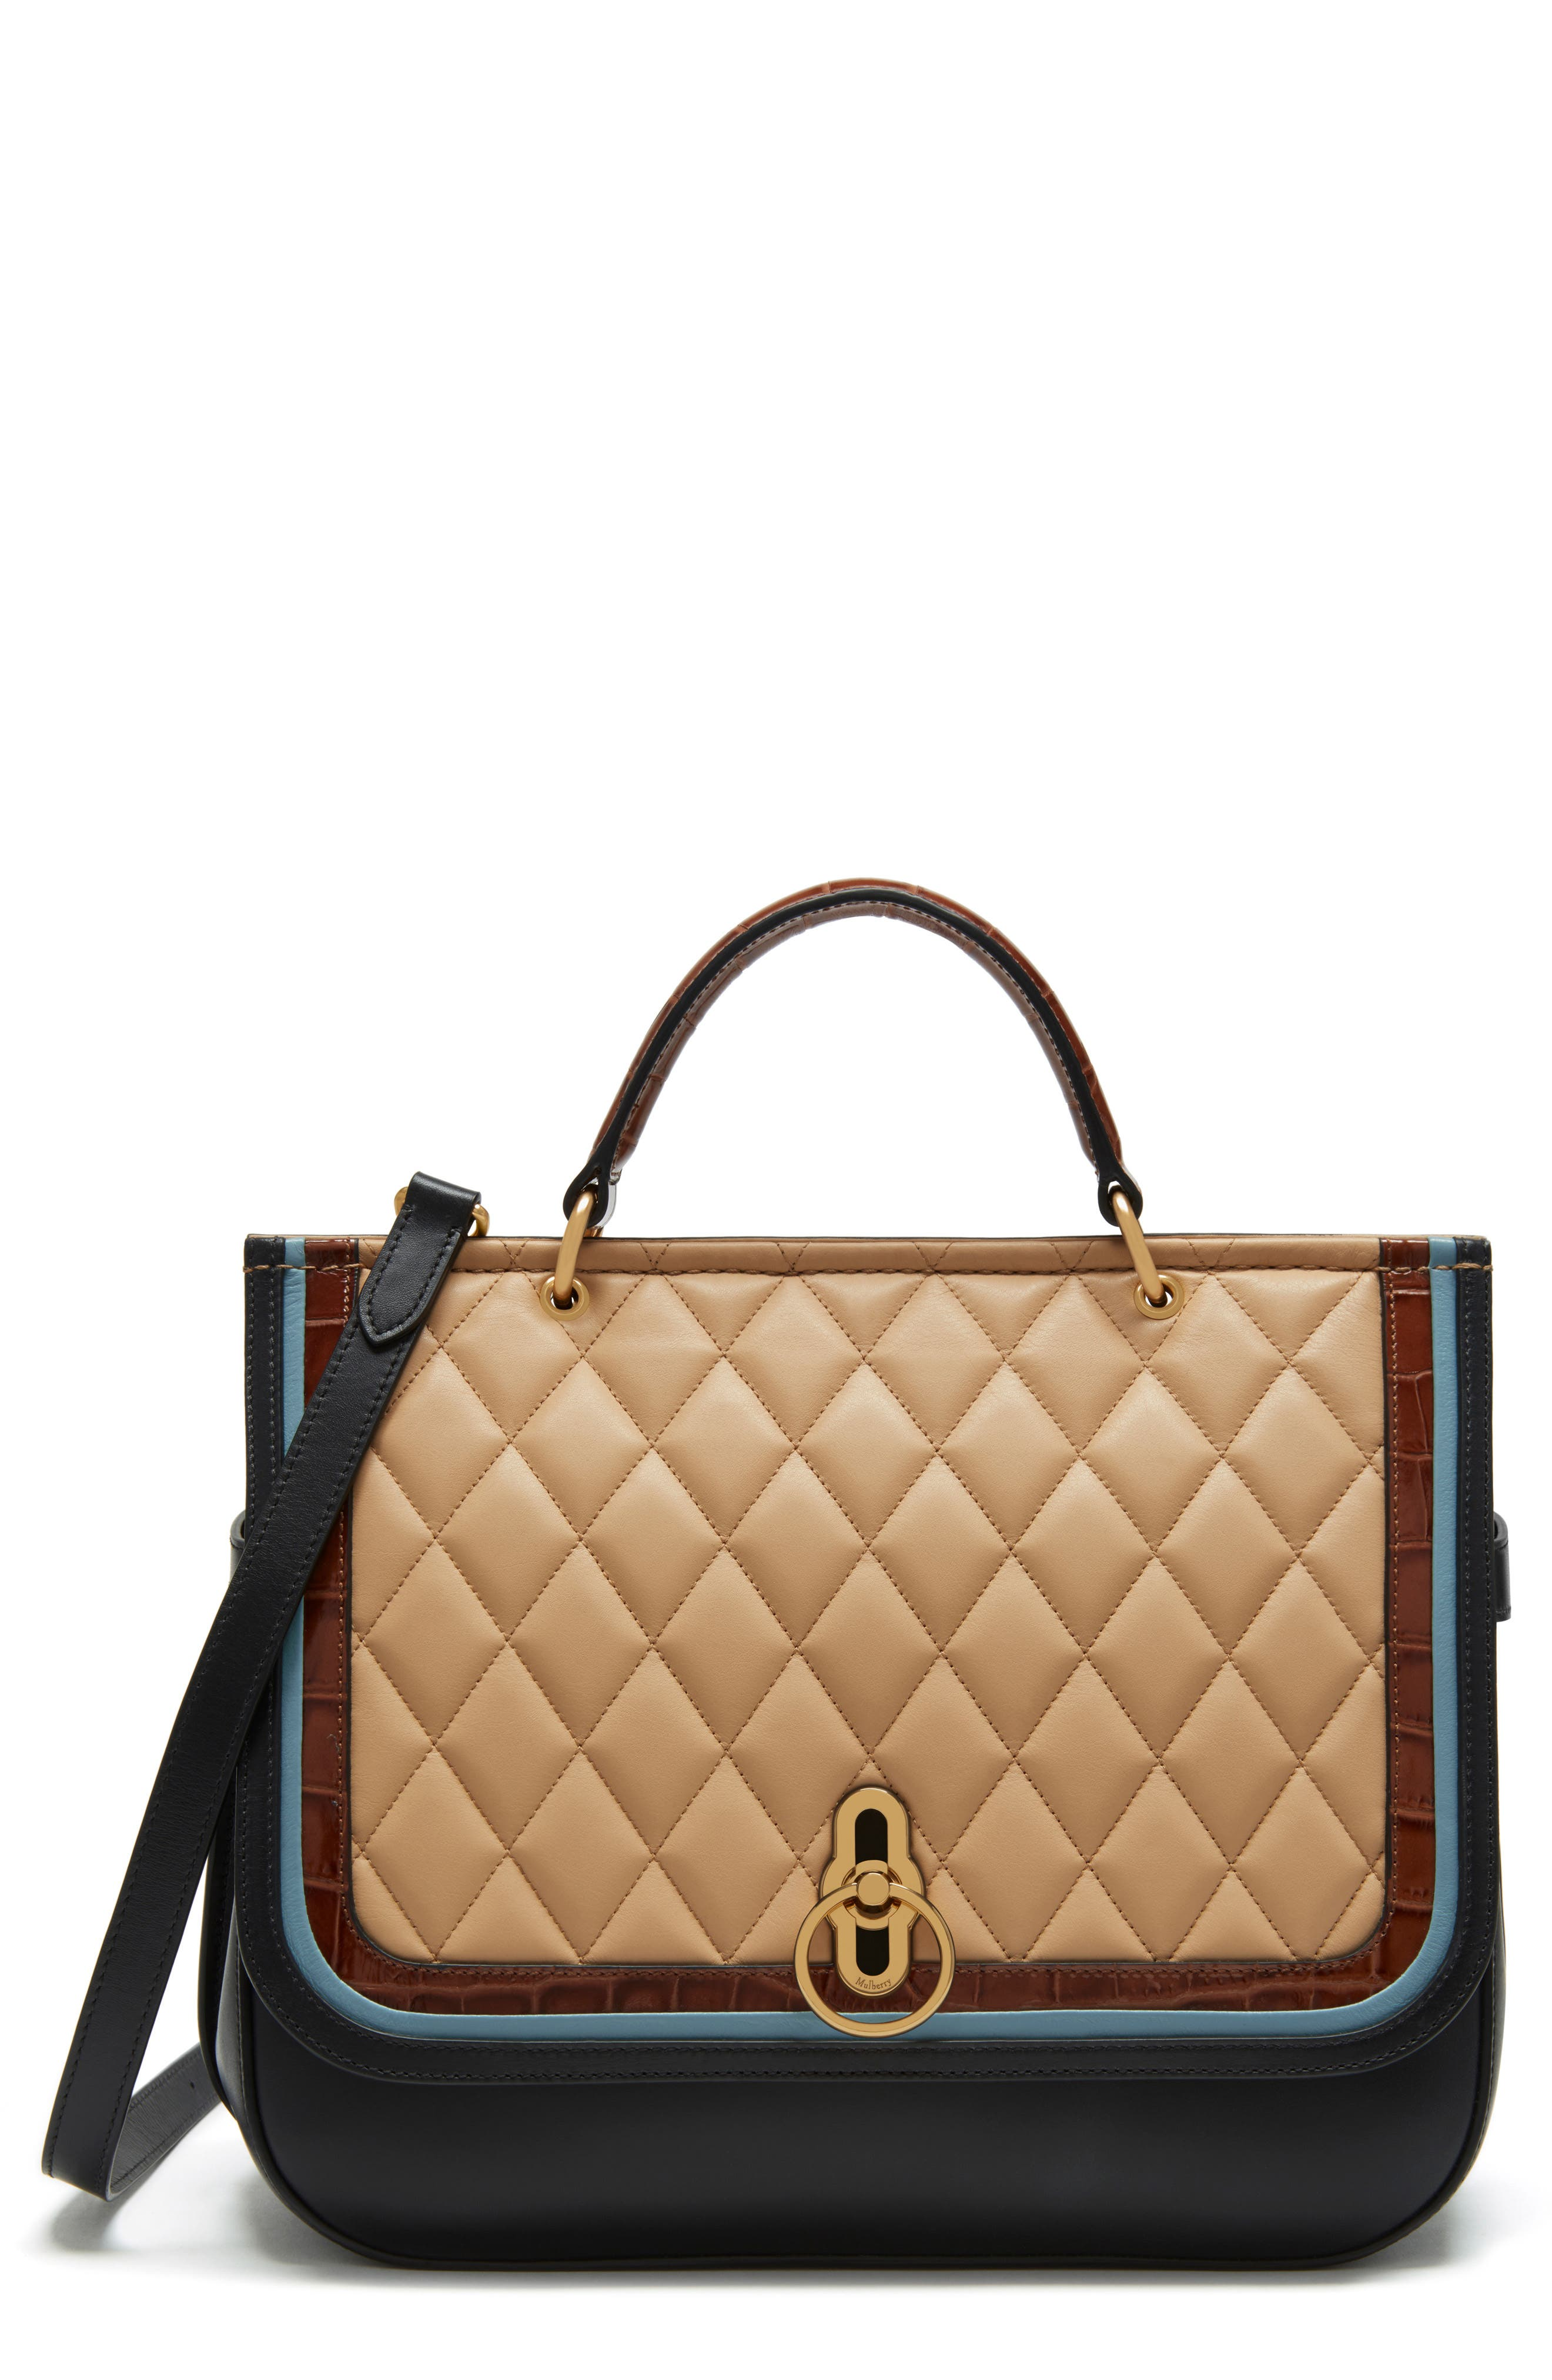 Amberley Quilted Calfskin Leather Satchel,                         Main,                         color, Black/ Tan/ Multi